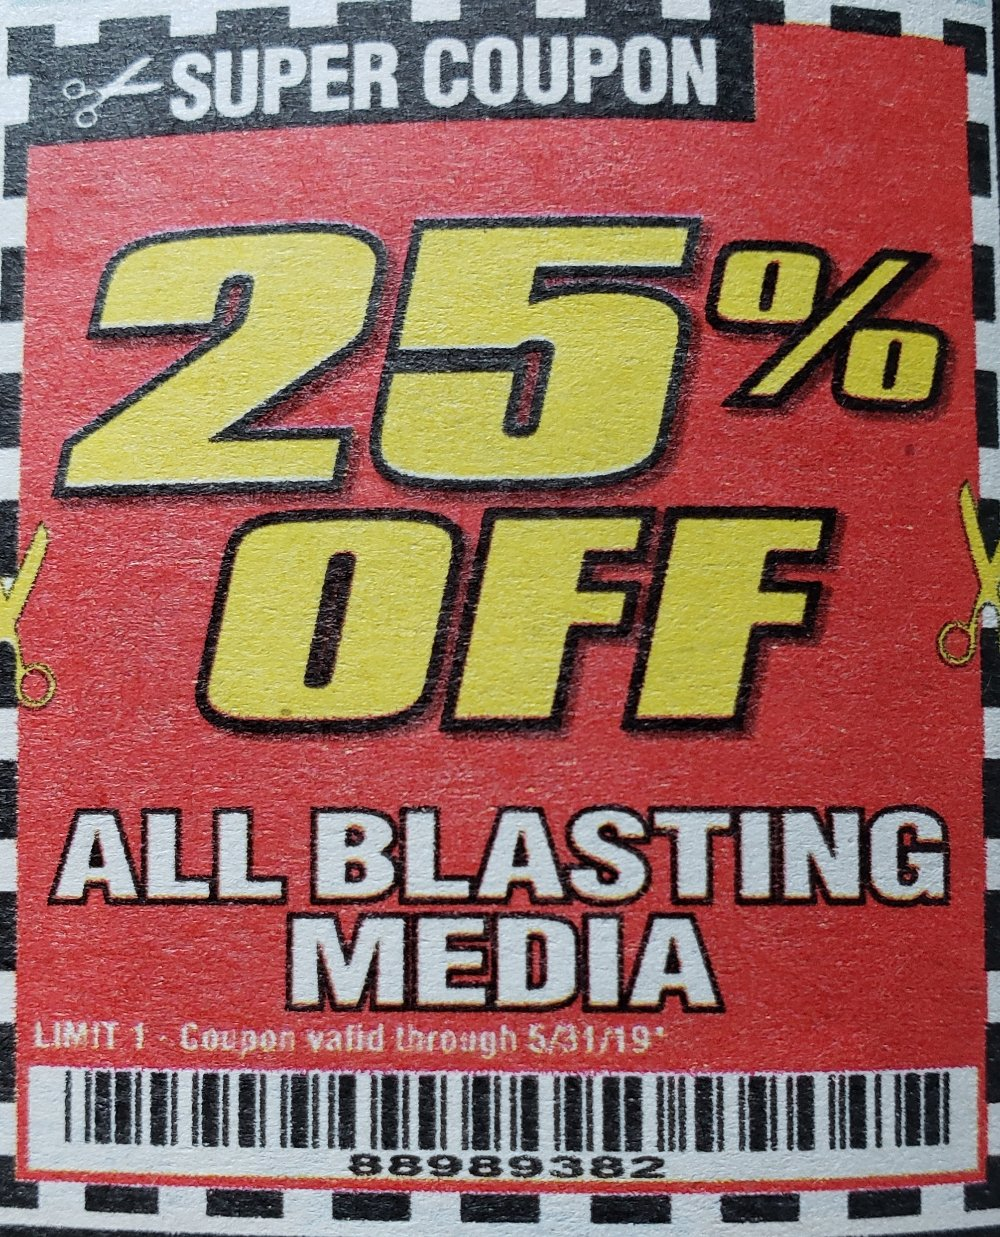 Harbor Freight Coupons, HF Coupons, 20% off - 25% off for ALL BLASTING MEDIA